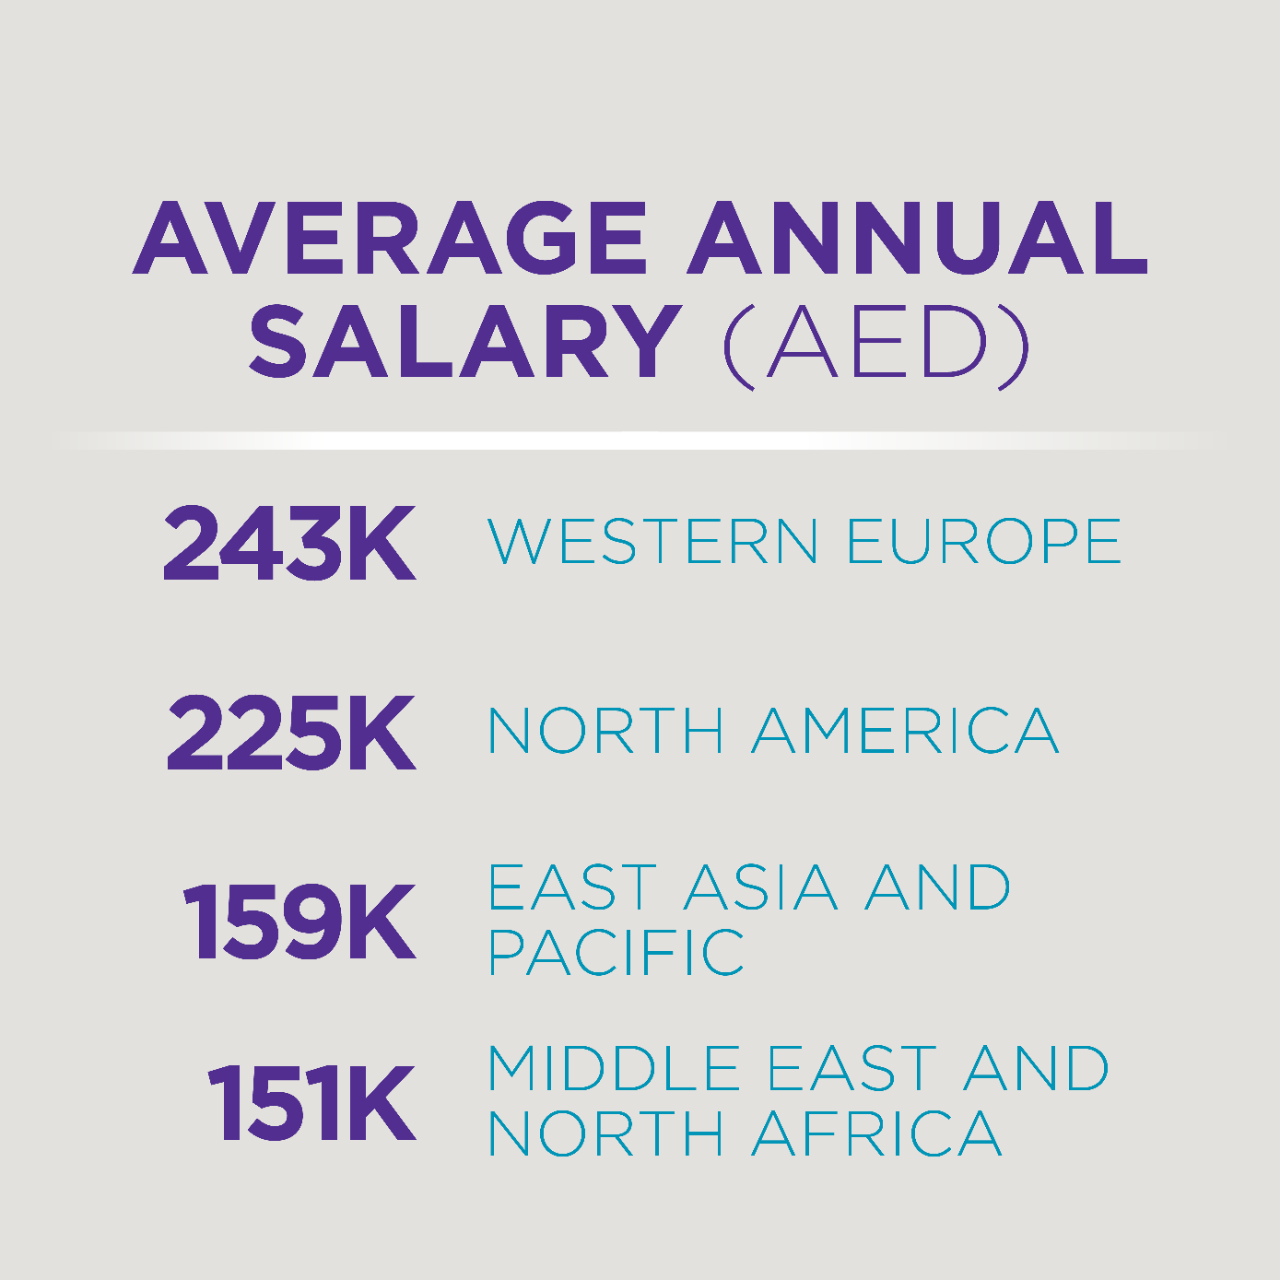 Average Annual Salary (AED): 243K - Western Europe; 225K - North America; 159K - East Asia and Pacific; 151K - Middle East and North Africa.